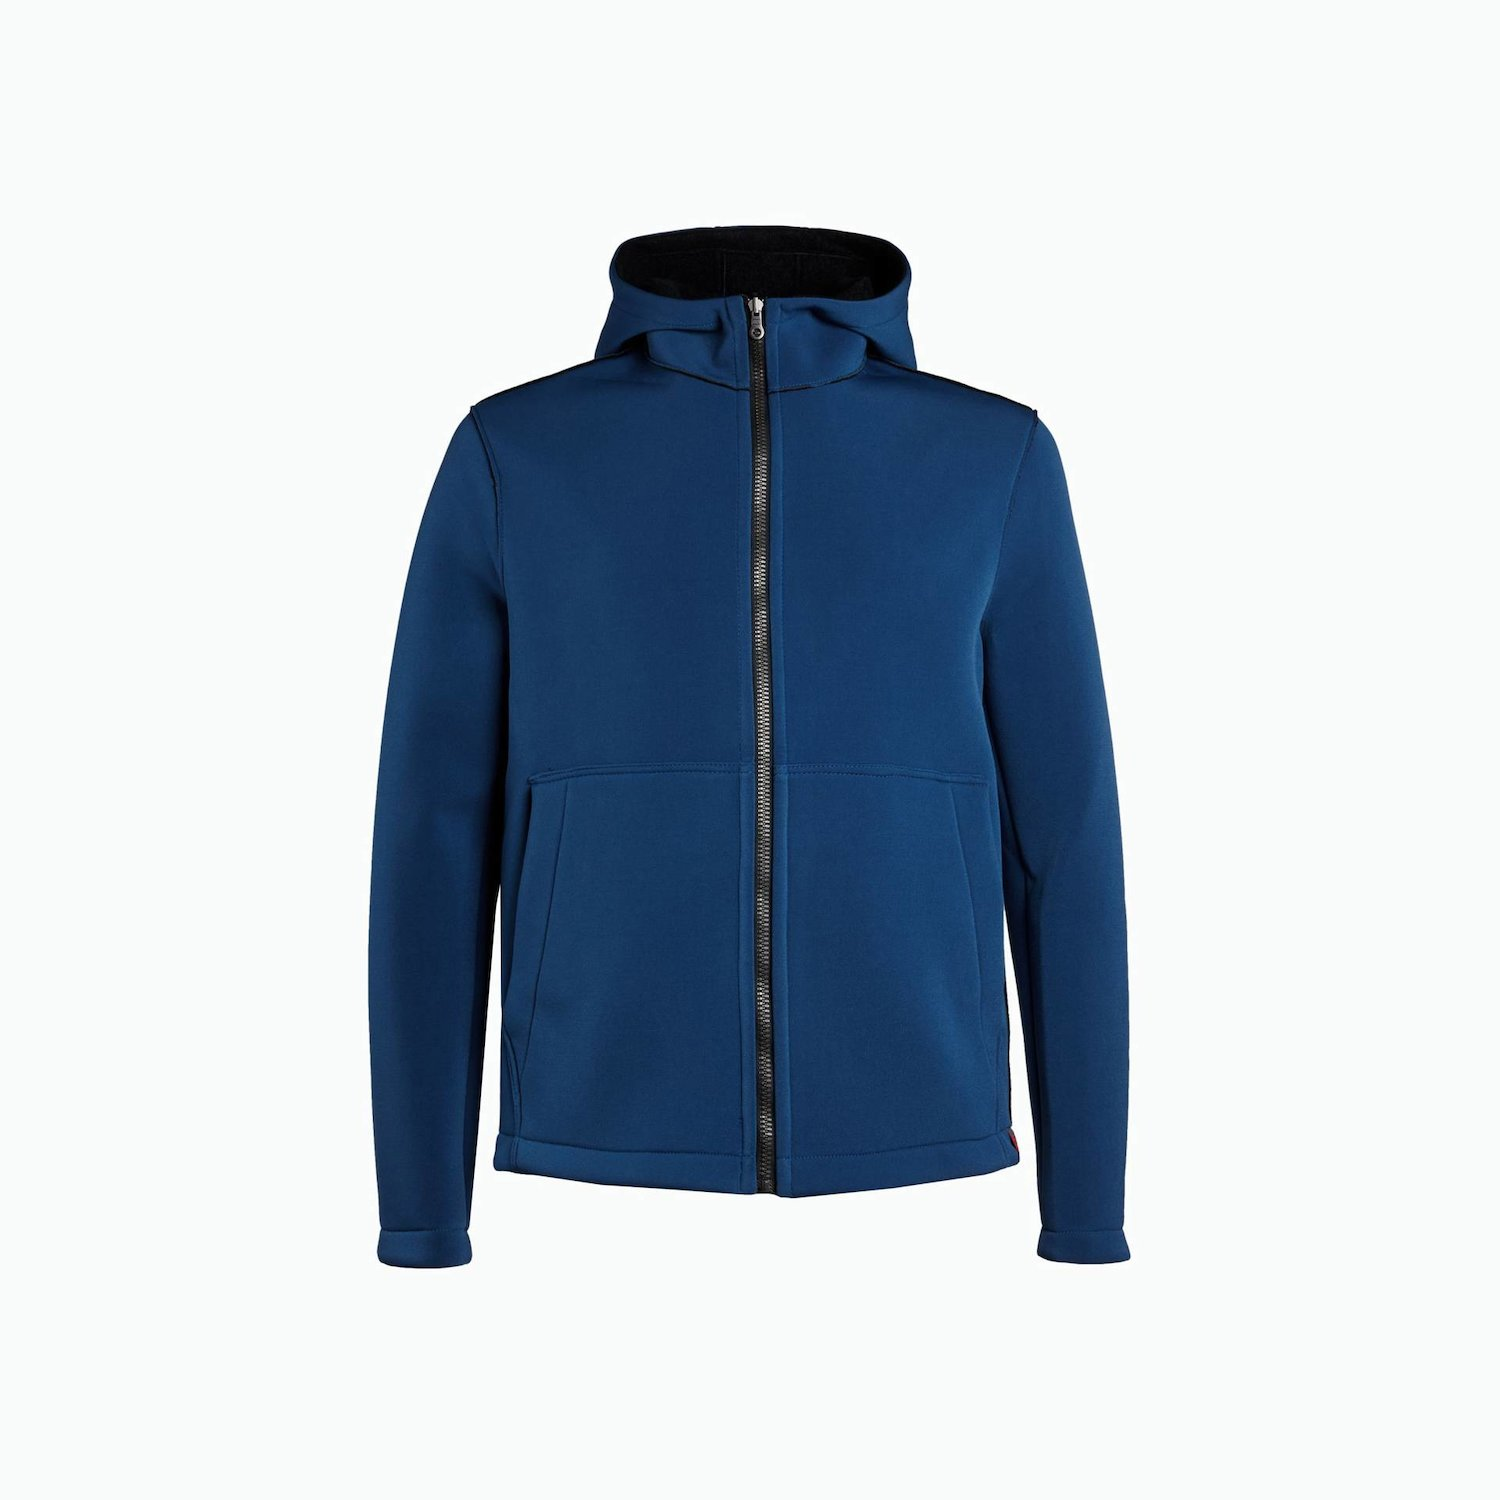 Gulfport jacket - Navy